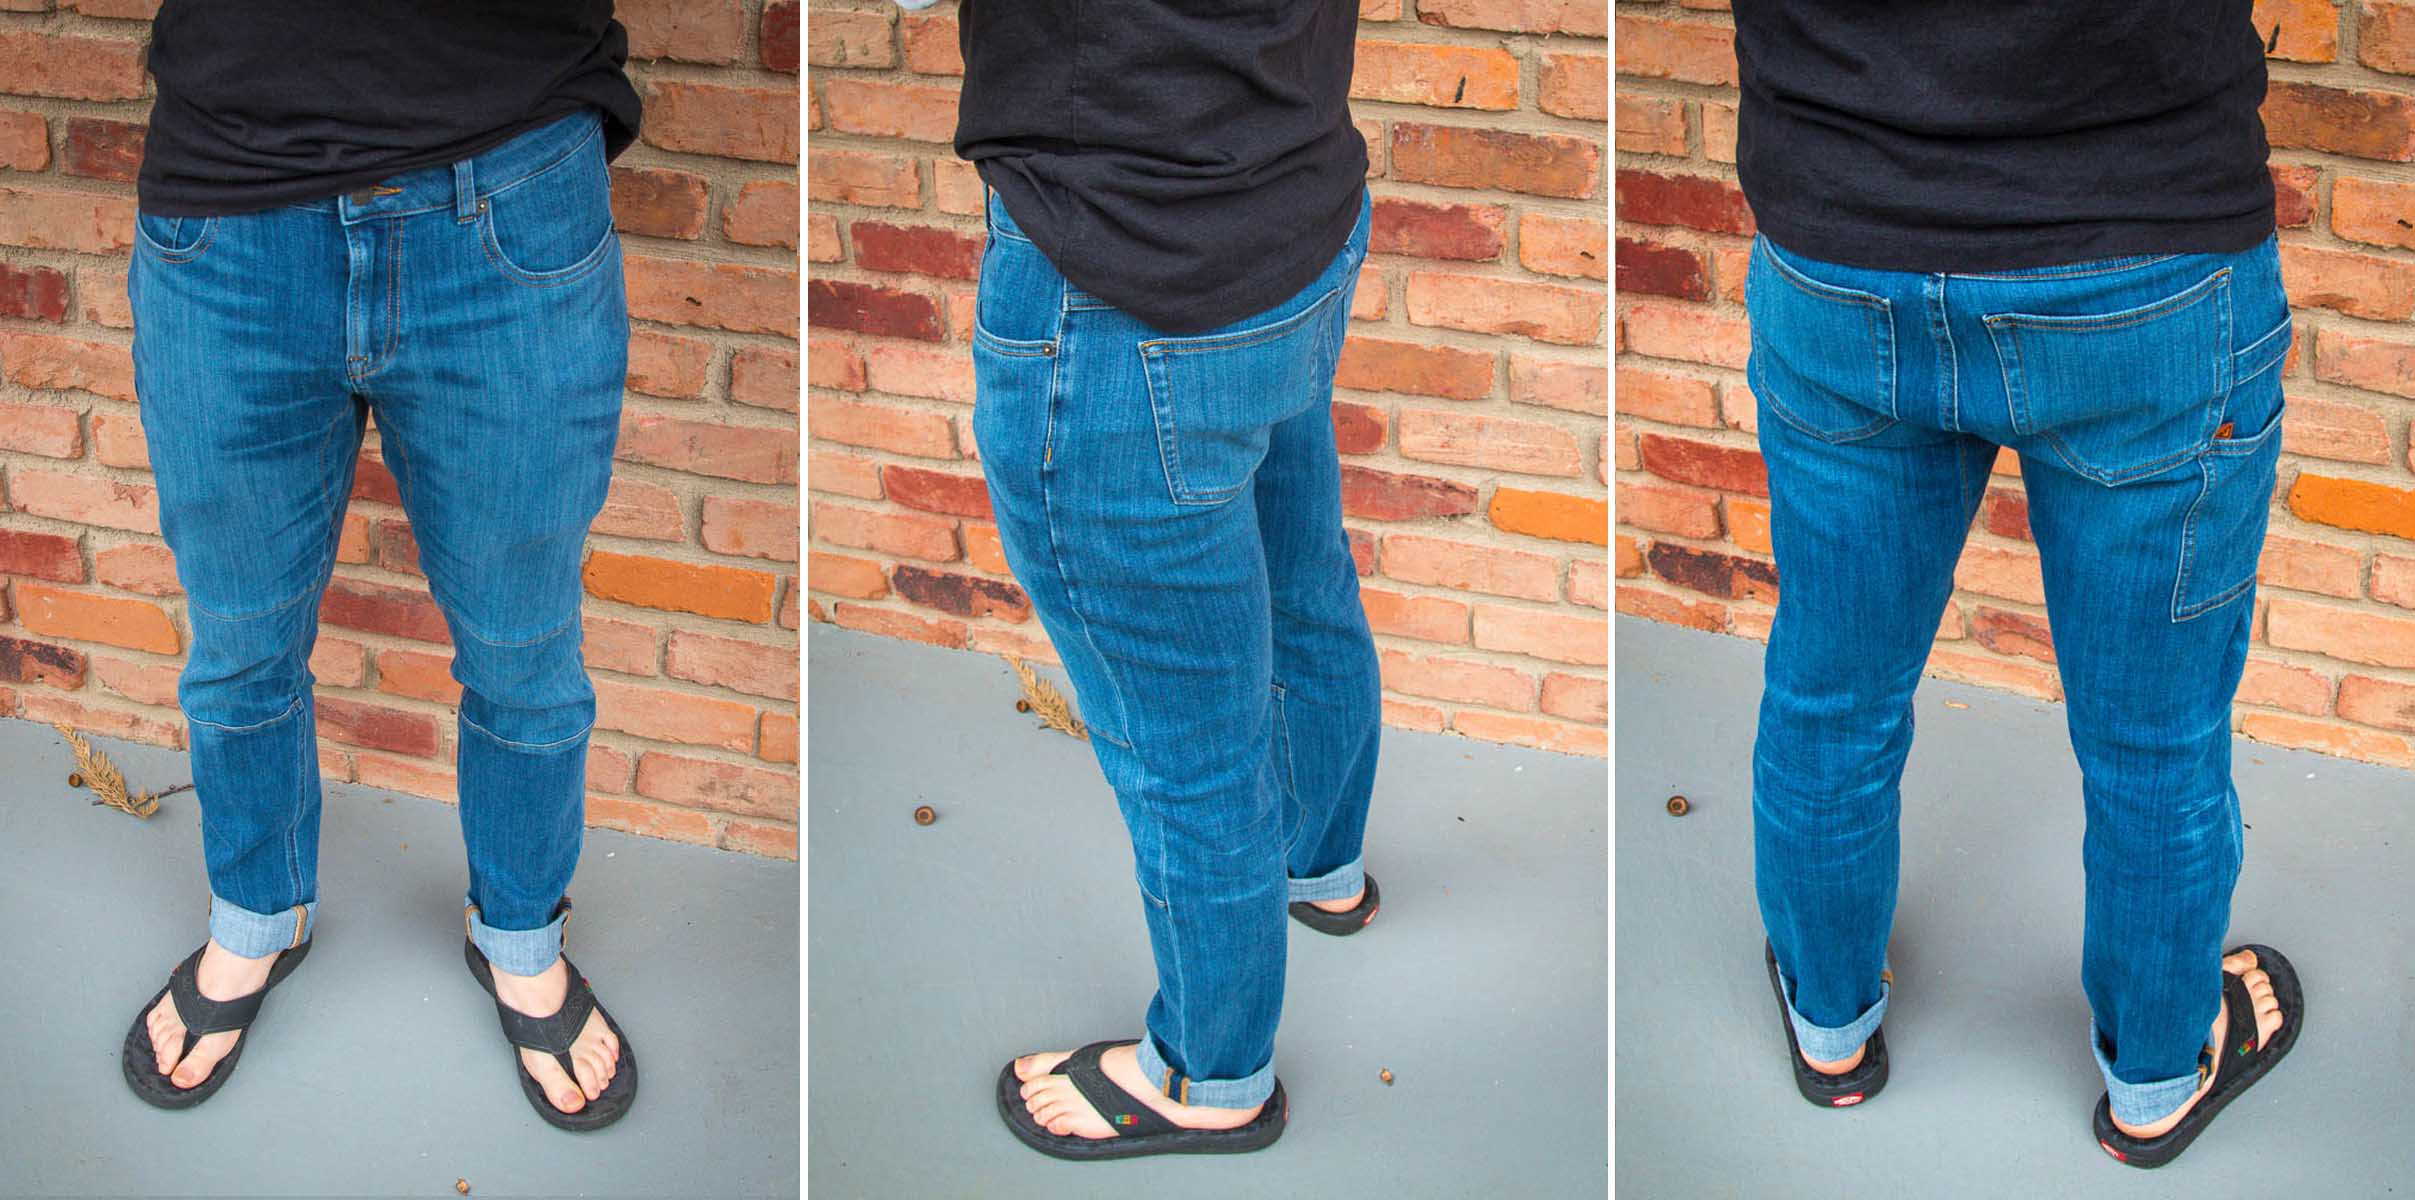 Boulder Denim 3.0 jeans for cyclists people with big legs butts thighs